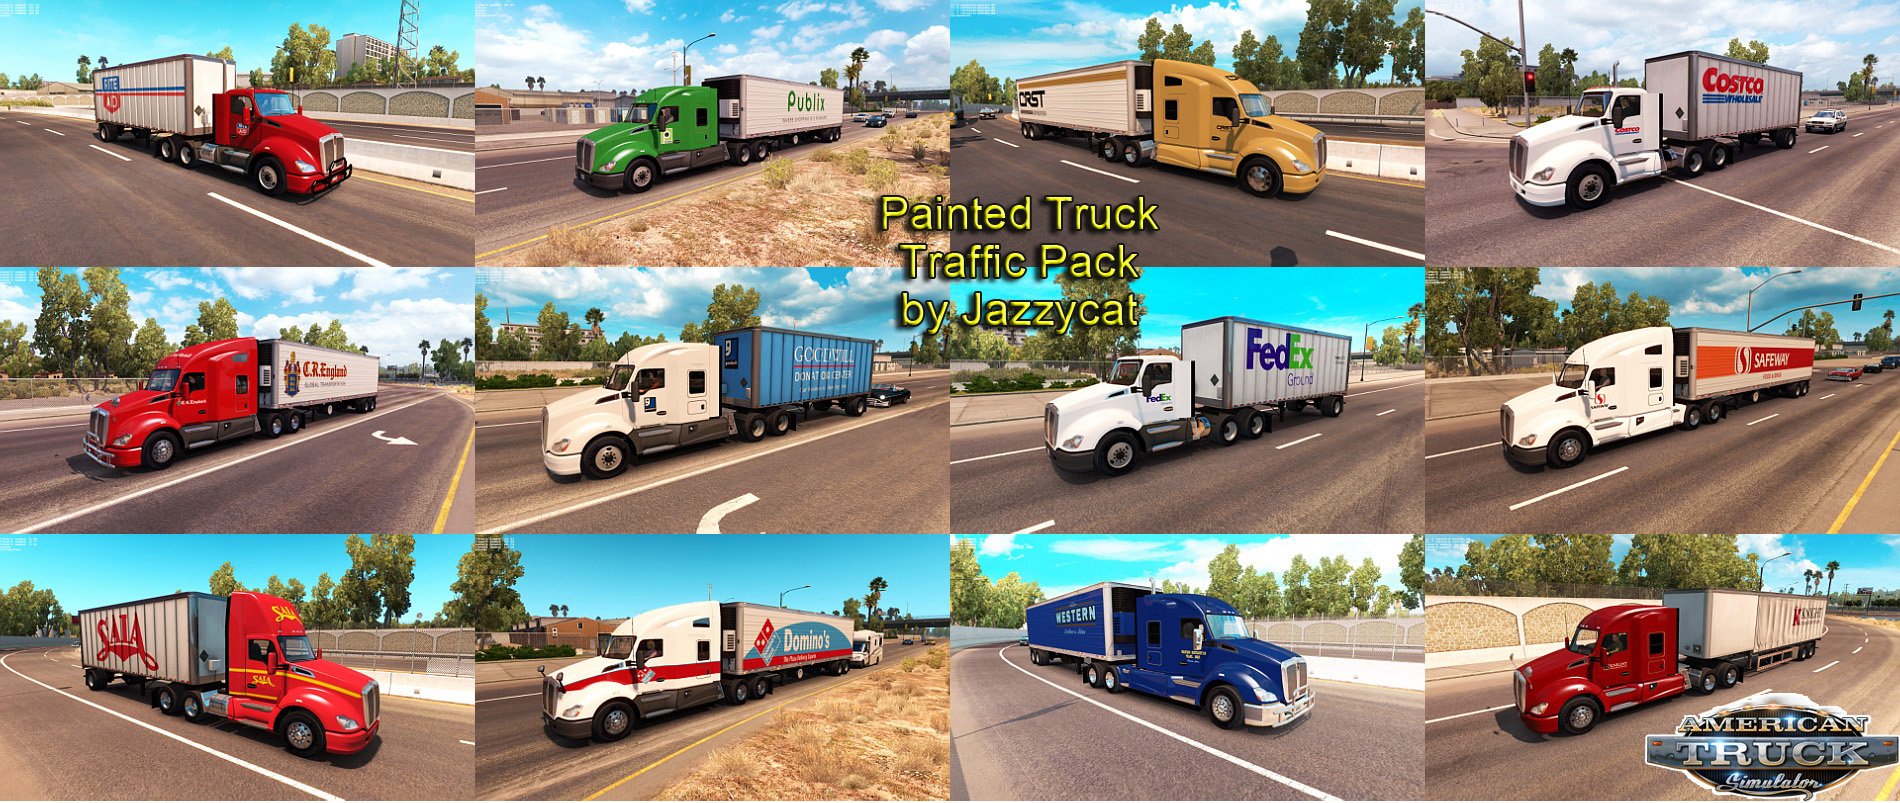 painted_truck_traffic_pack_by_Jazzycat_v1.0_ats.jpg